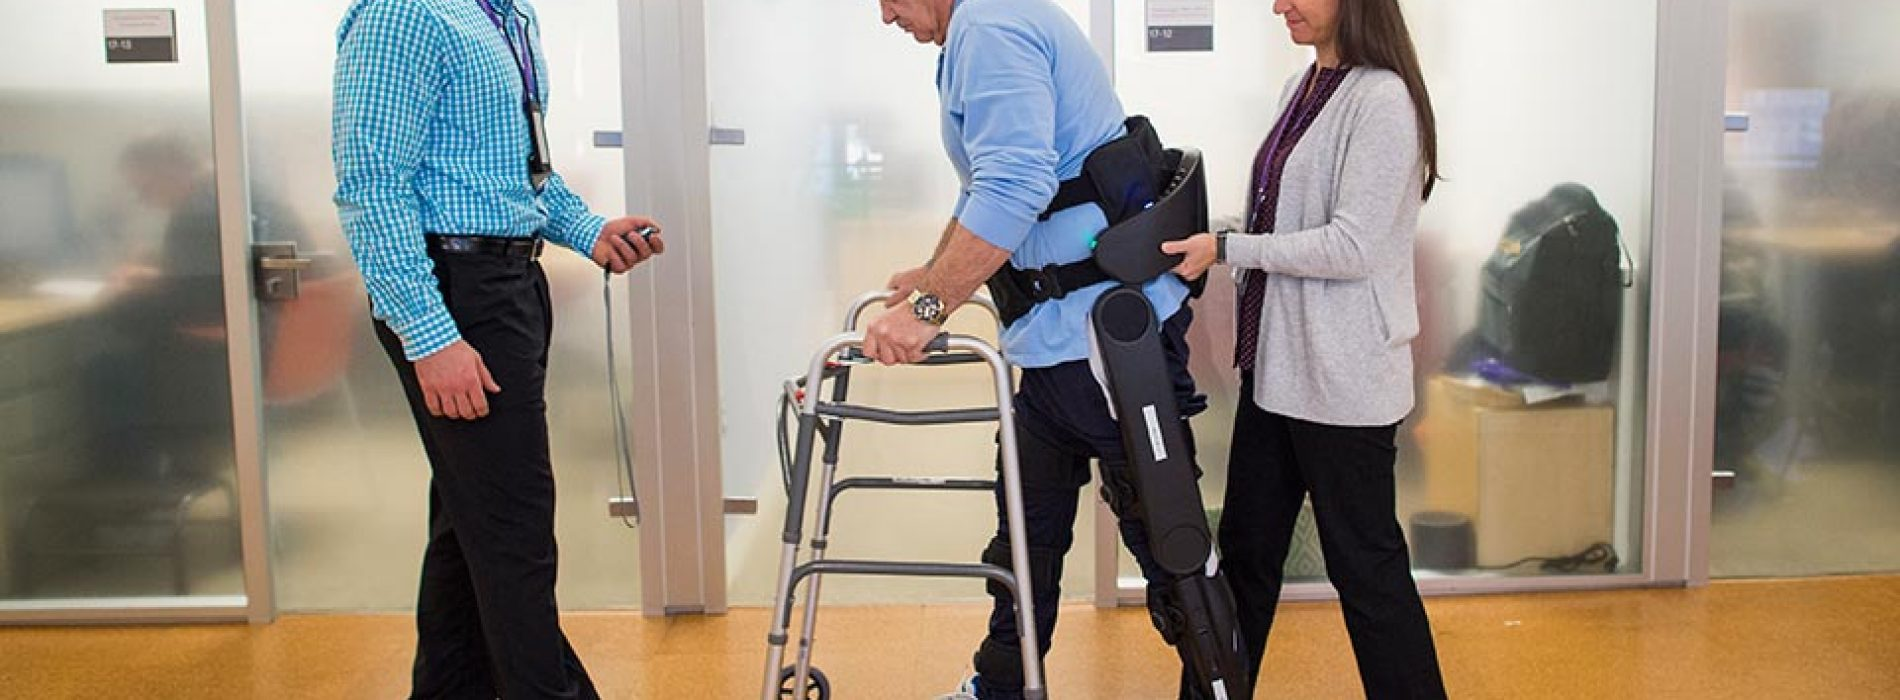 Professional rehabilitation treatment solutions from good rehab in Scotland